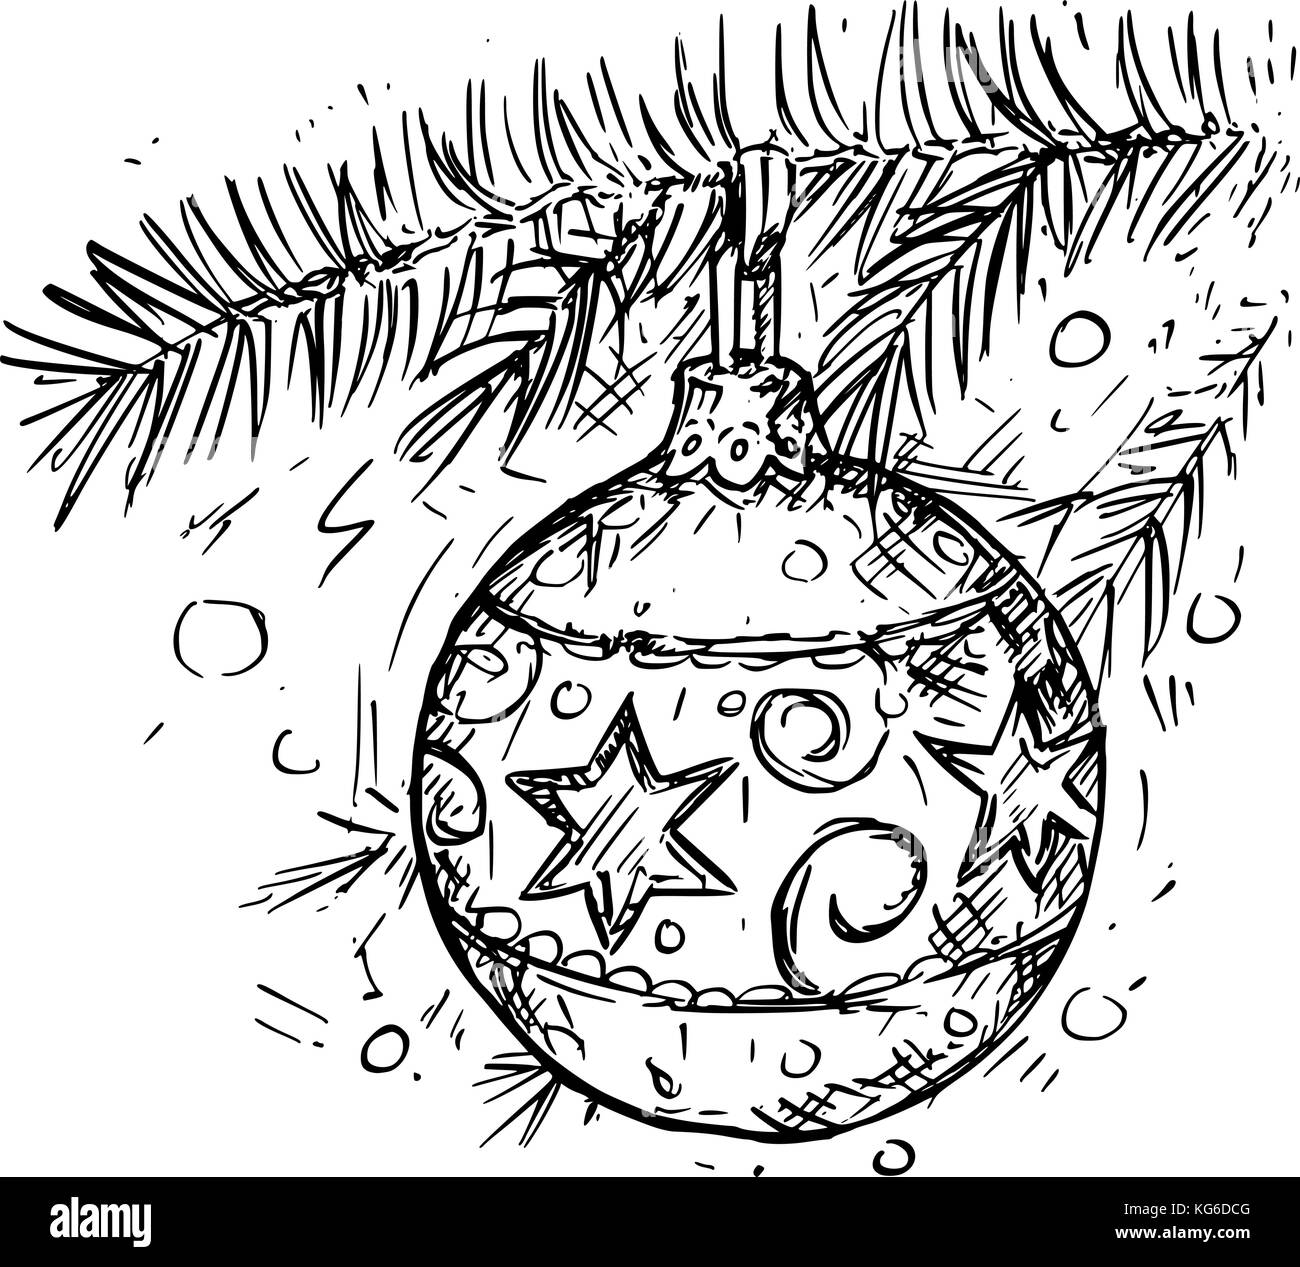 Christmas Drawing High Resolution Stock Photography And Images Alamy